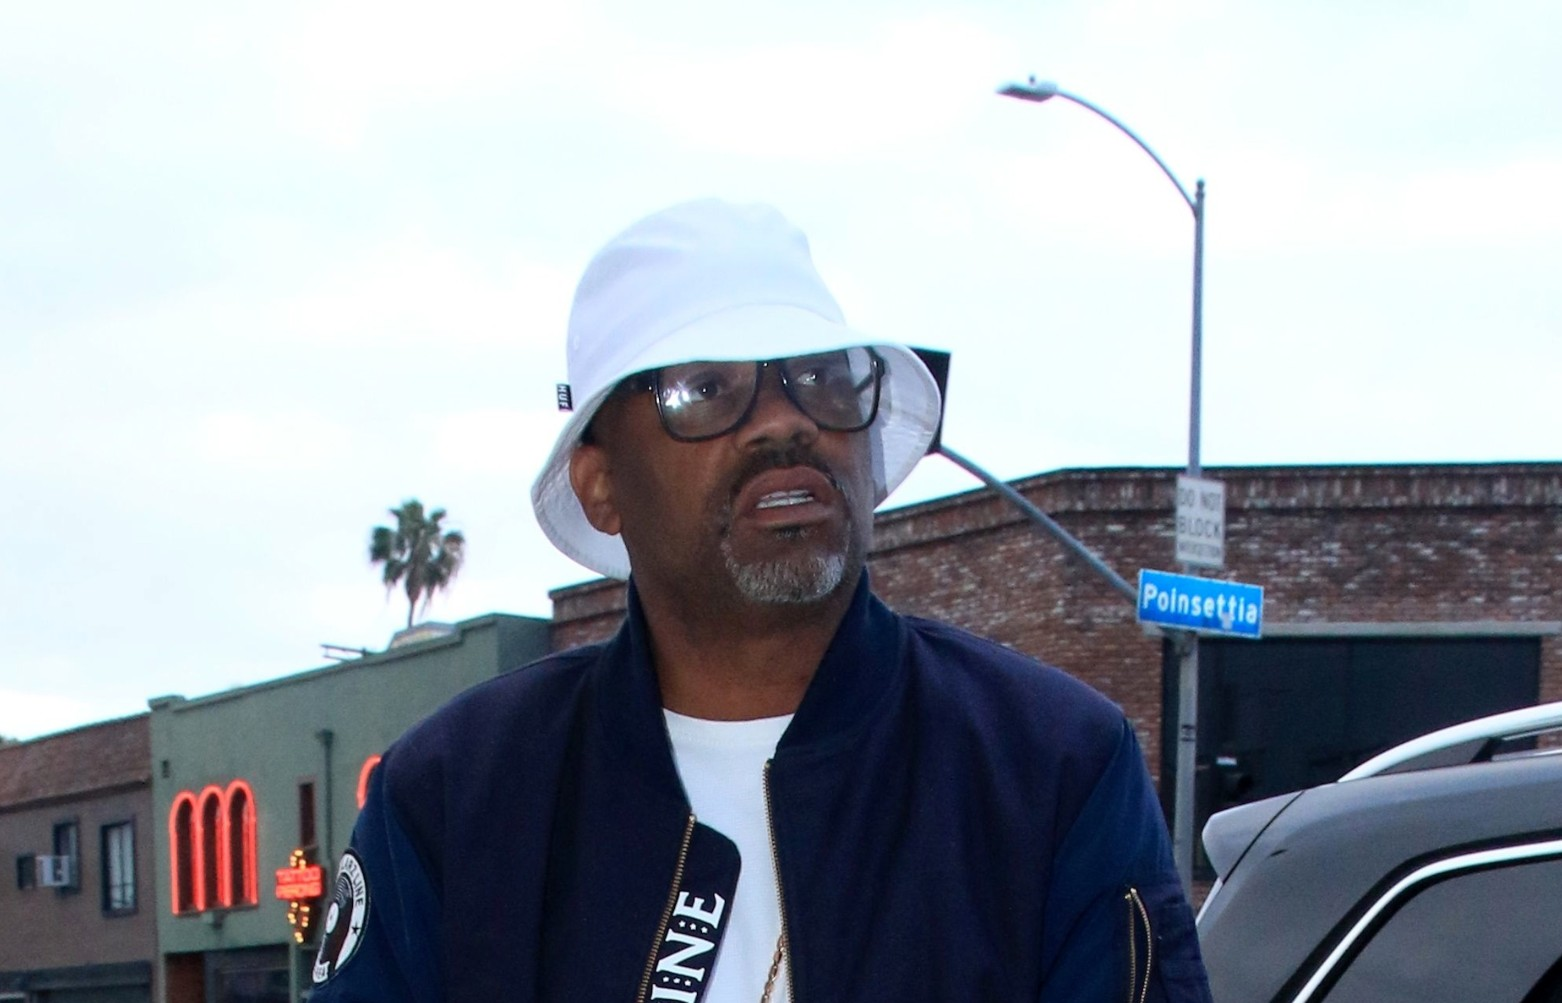 """EXCLUSIVE: Lawyer Vows To Get """"Every Penny"""" Of $300K Judgment From Damon Dash"""